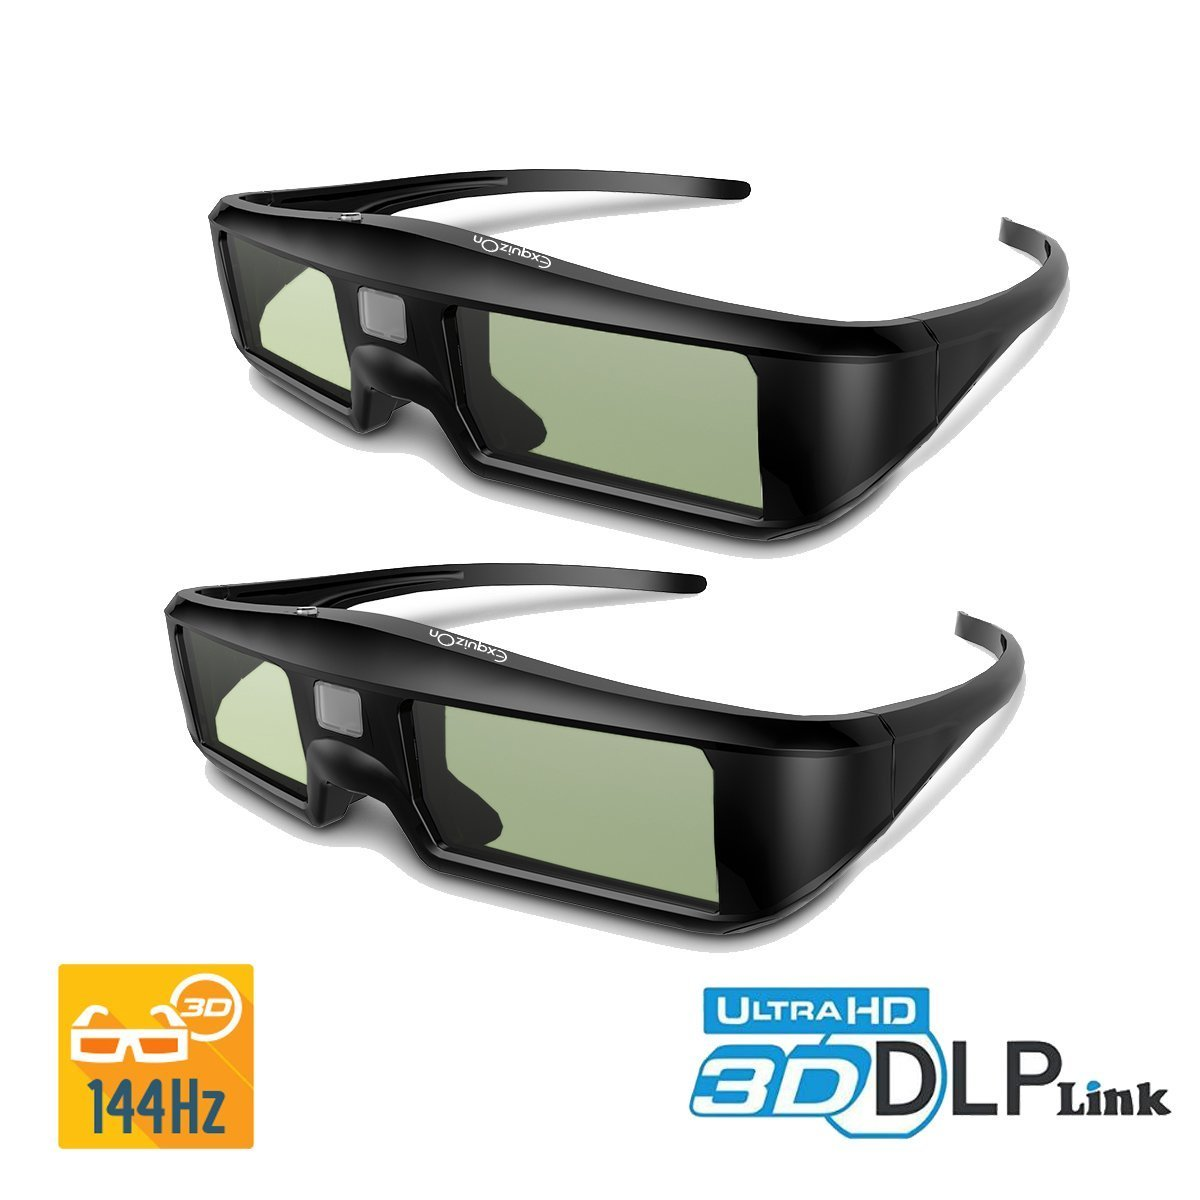 ExquizOn 2 Packs Ultra-Clear HD 96-144Hz DLP LINK 3D Active Rechargeable Shutter Glasses for All 3D DLP Projectors BenQ, Optoma, Dell, Mitsubishi, Samsung, Acer, Vivitek, NEC, Sharp, ViewSonic & Endle